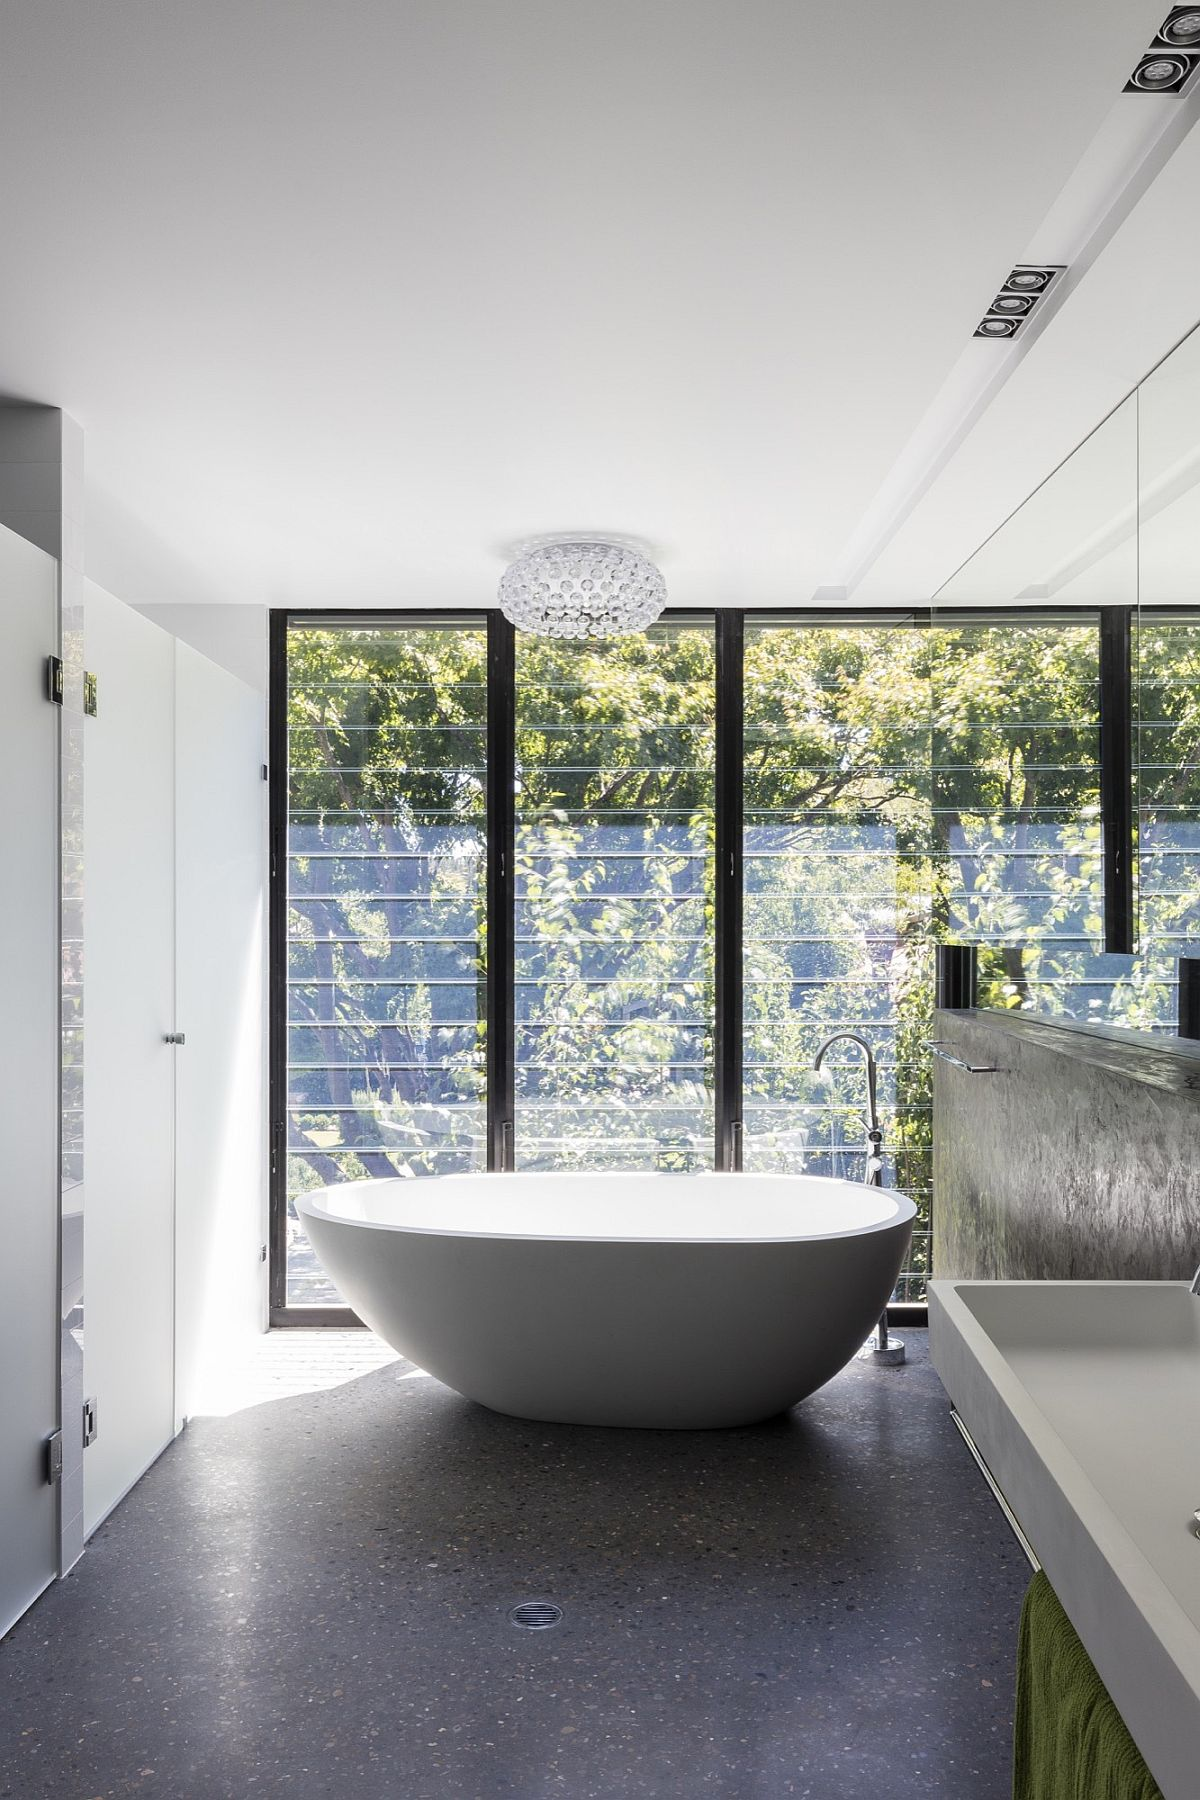 Standalone bathtub and chandelier for the contemporary bath